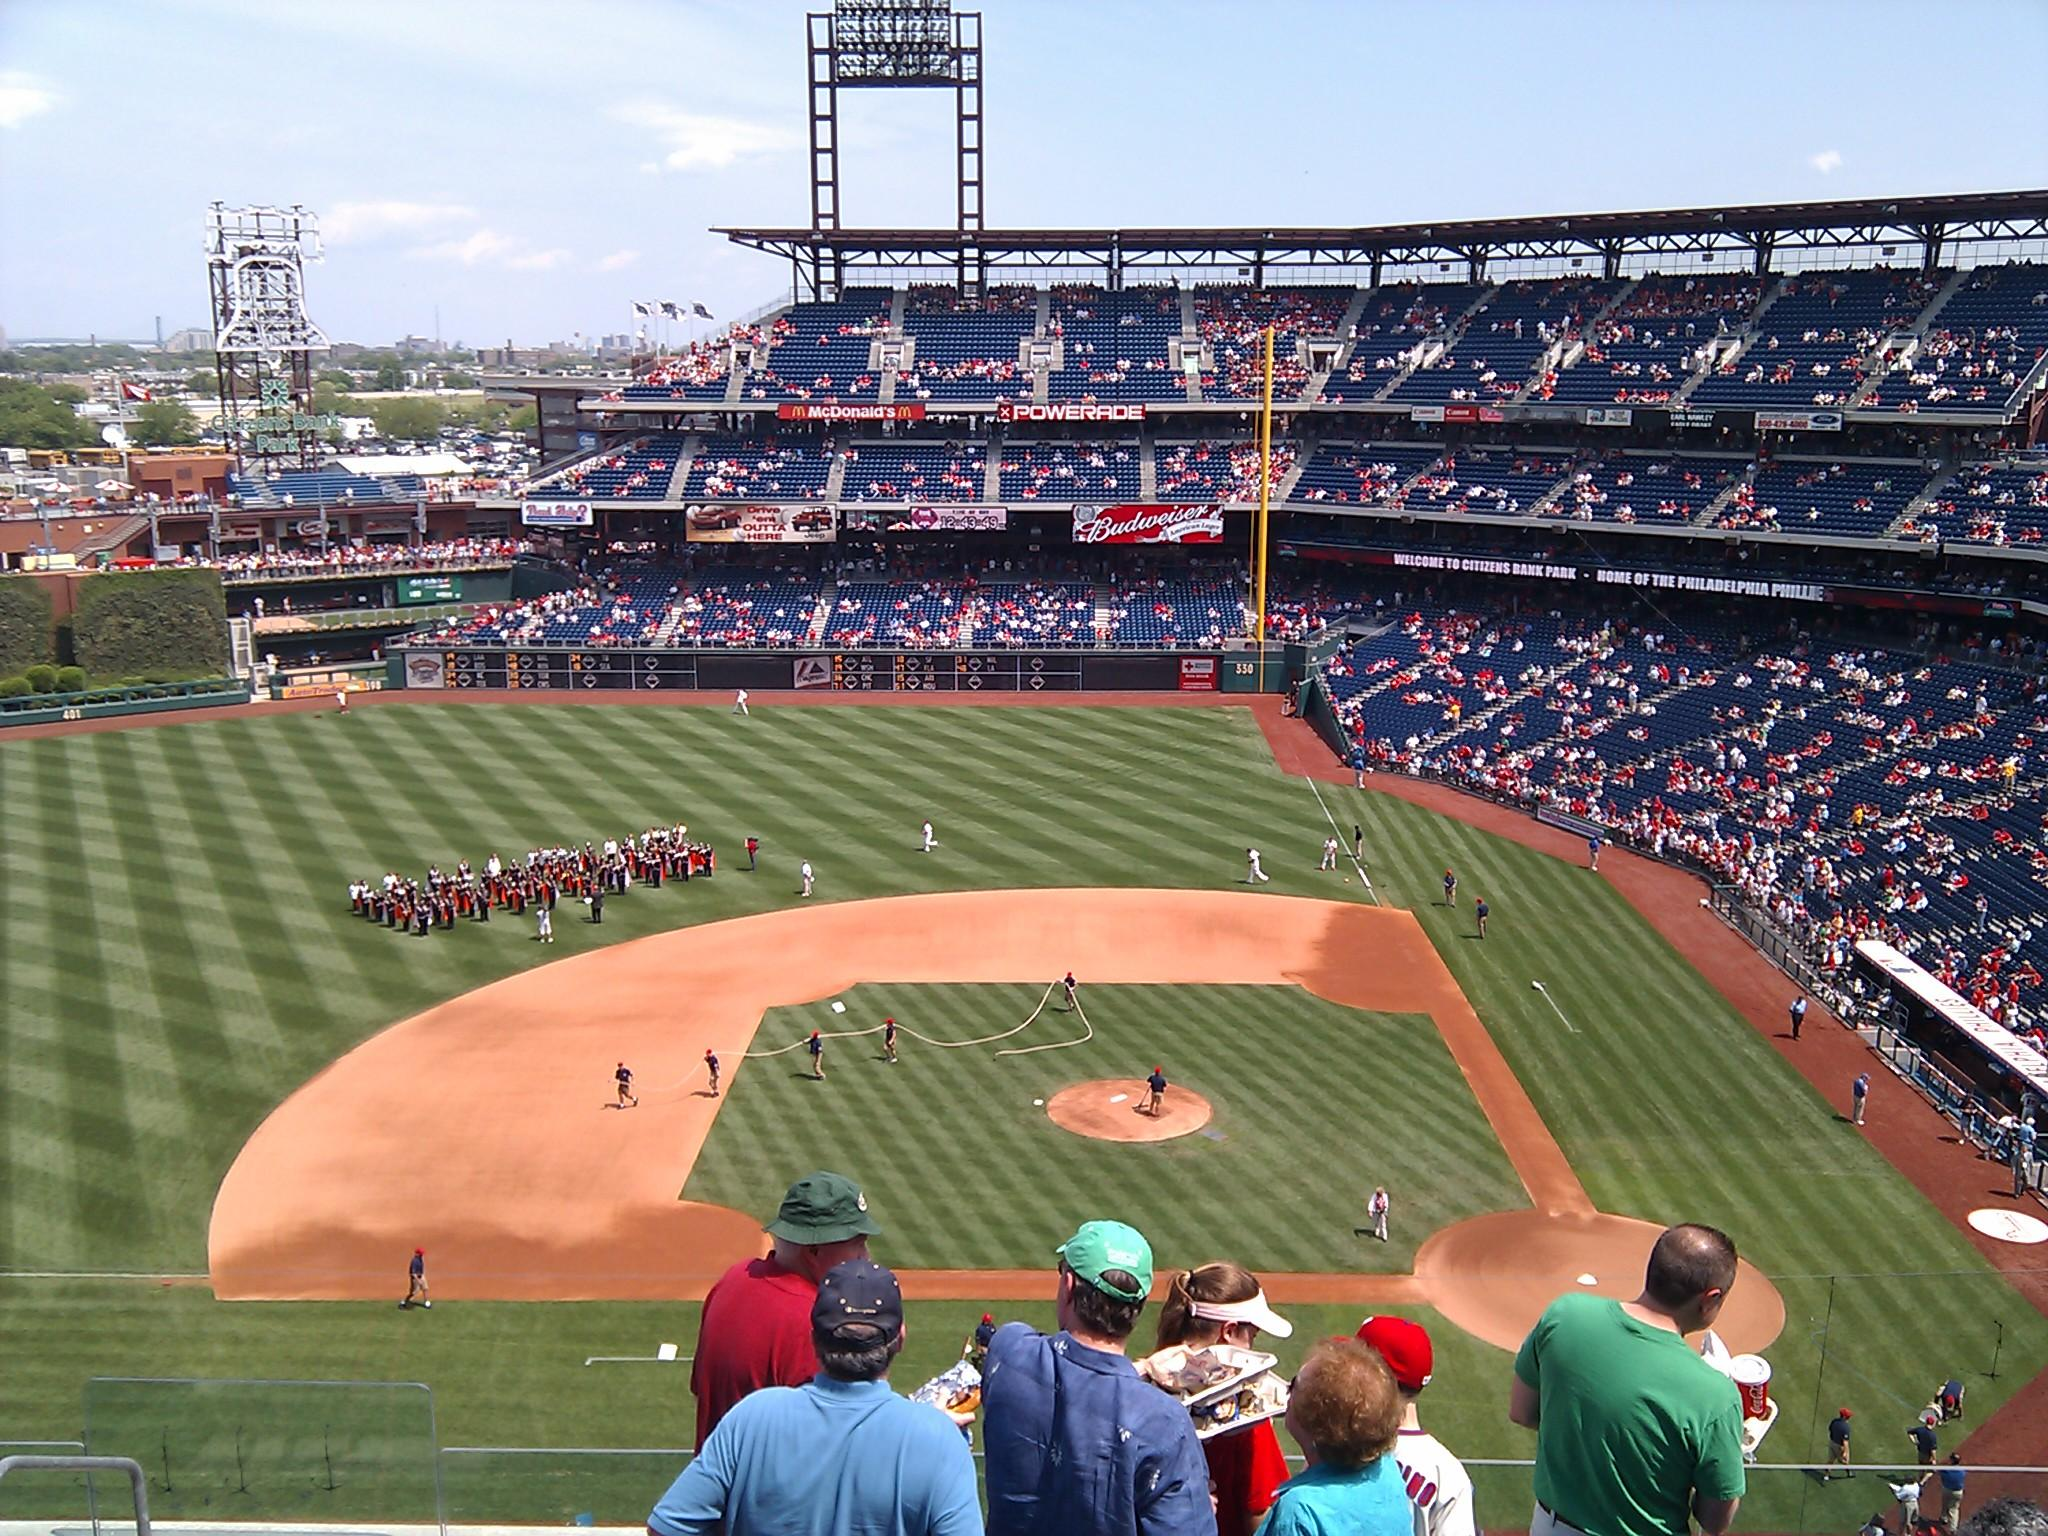 Citizens Bank Park Section 325 Row 8 Seat 20